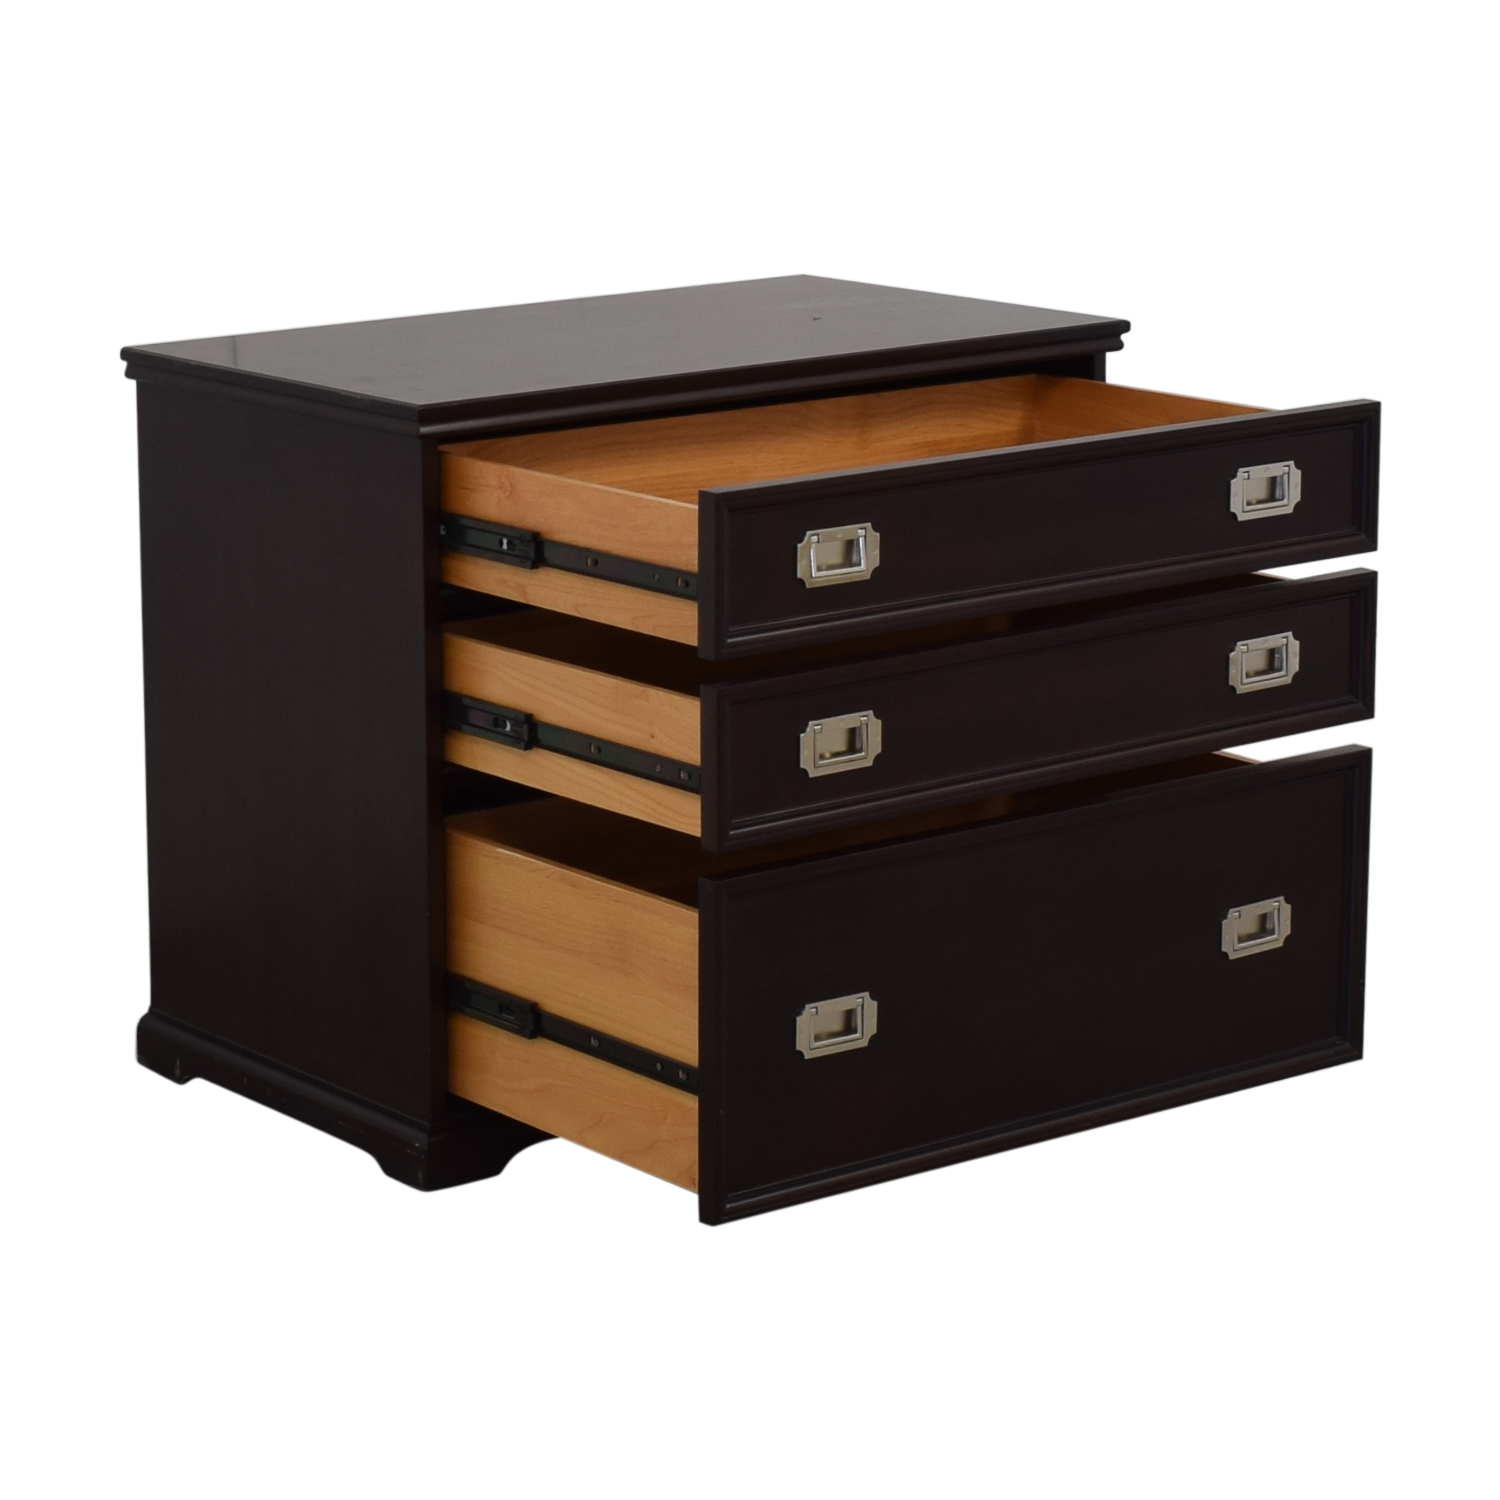 Pottery Barn Pottery Barn Three-Drawer Solid Wood Dresser for sale